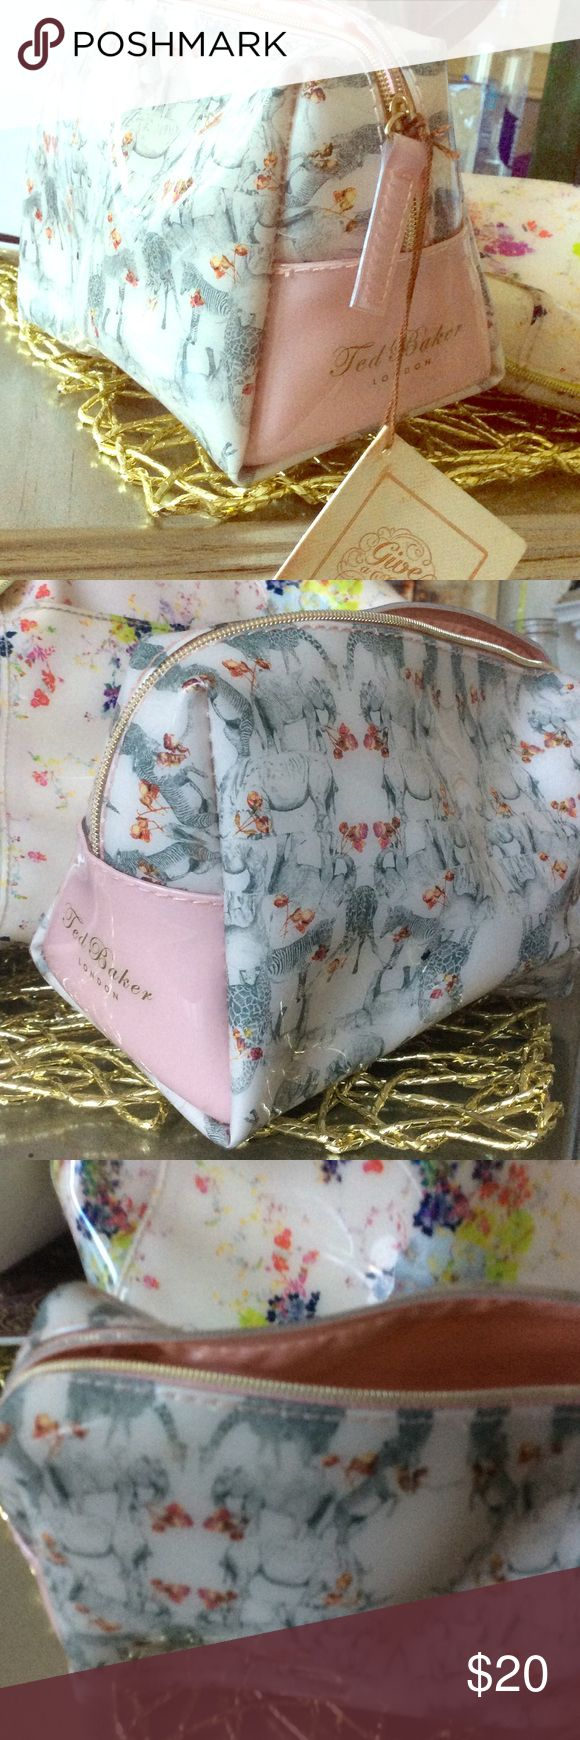 Ted Baker Makeup Bag small medium Zebras and giraffe with tiny red roses on it, although very subtle.  Has a very pastel feel to it. Baker by Ted Baker Accessories